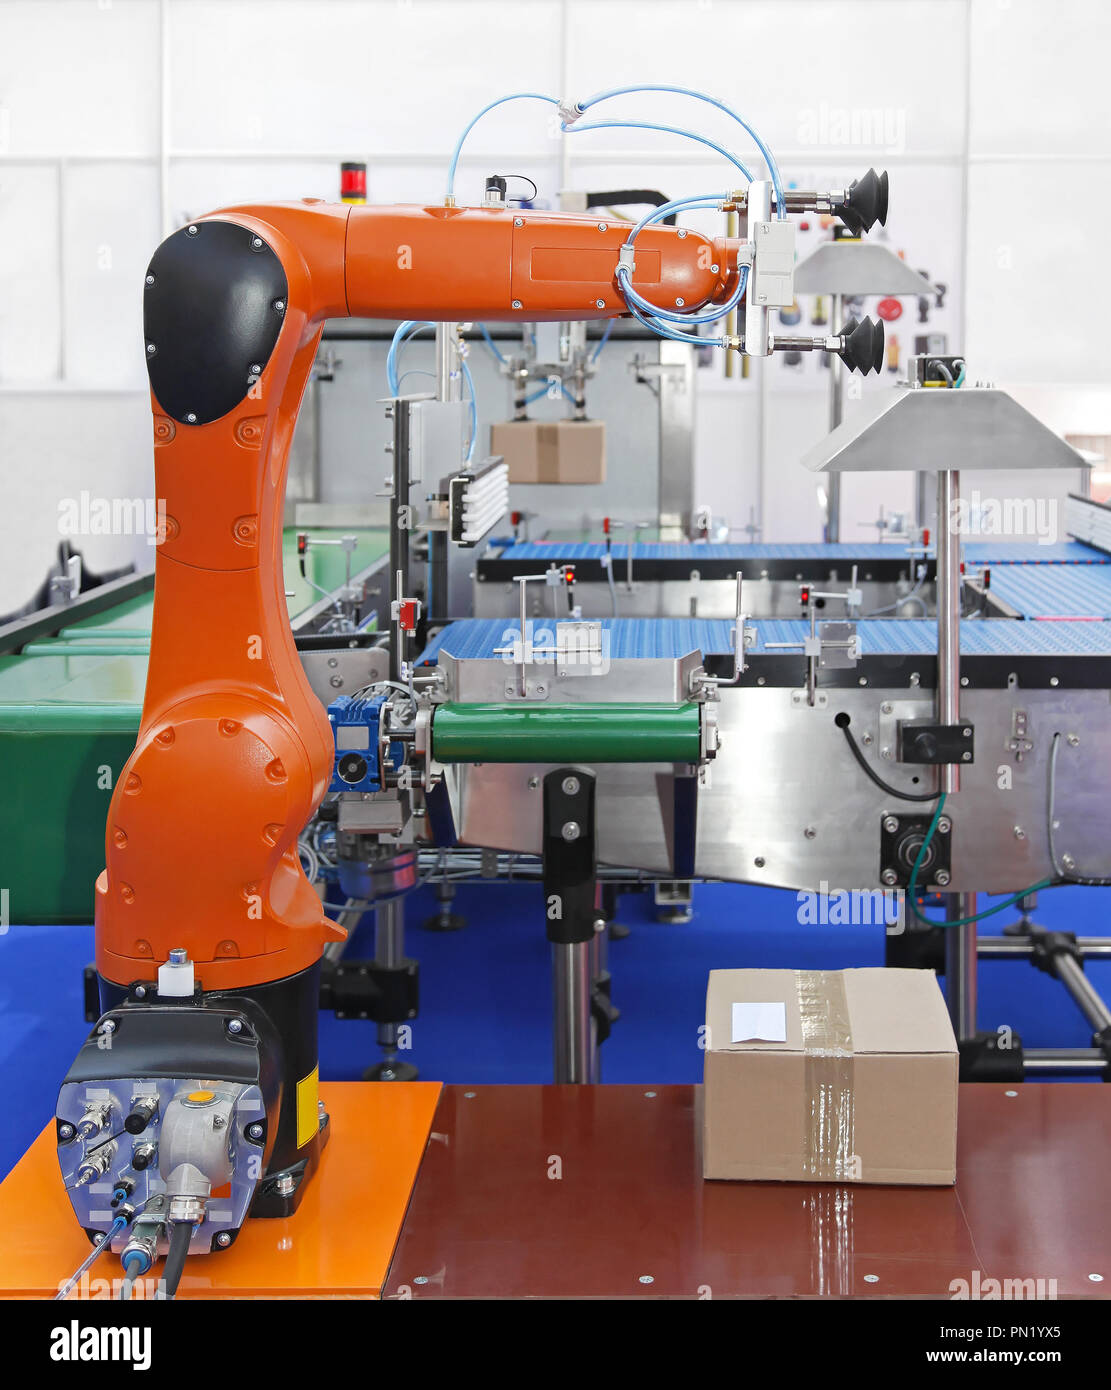 Articulated robotic arm at packaging line in factory - Stock Image